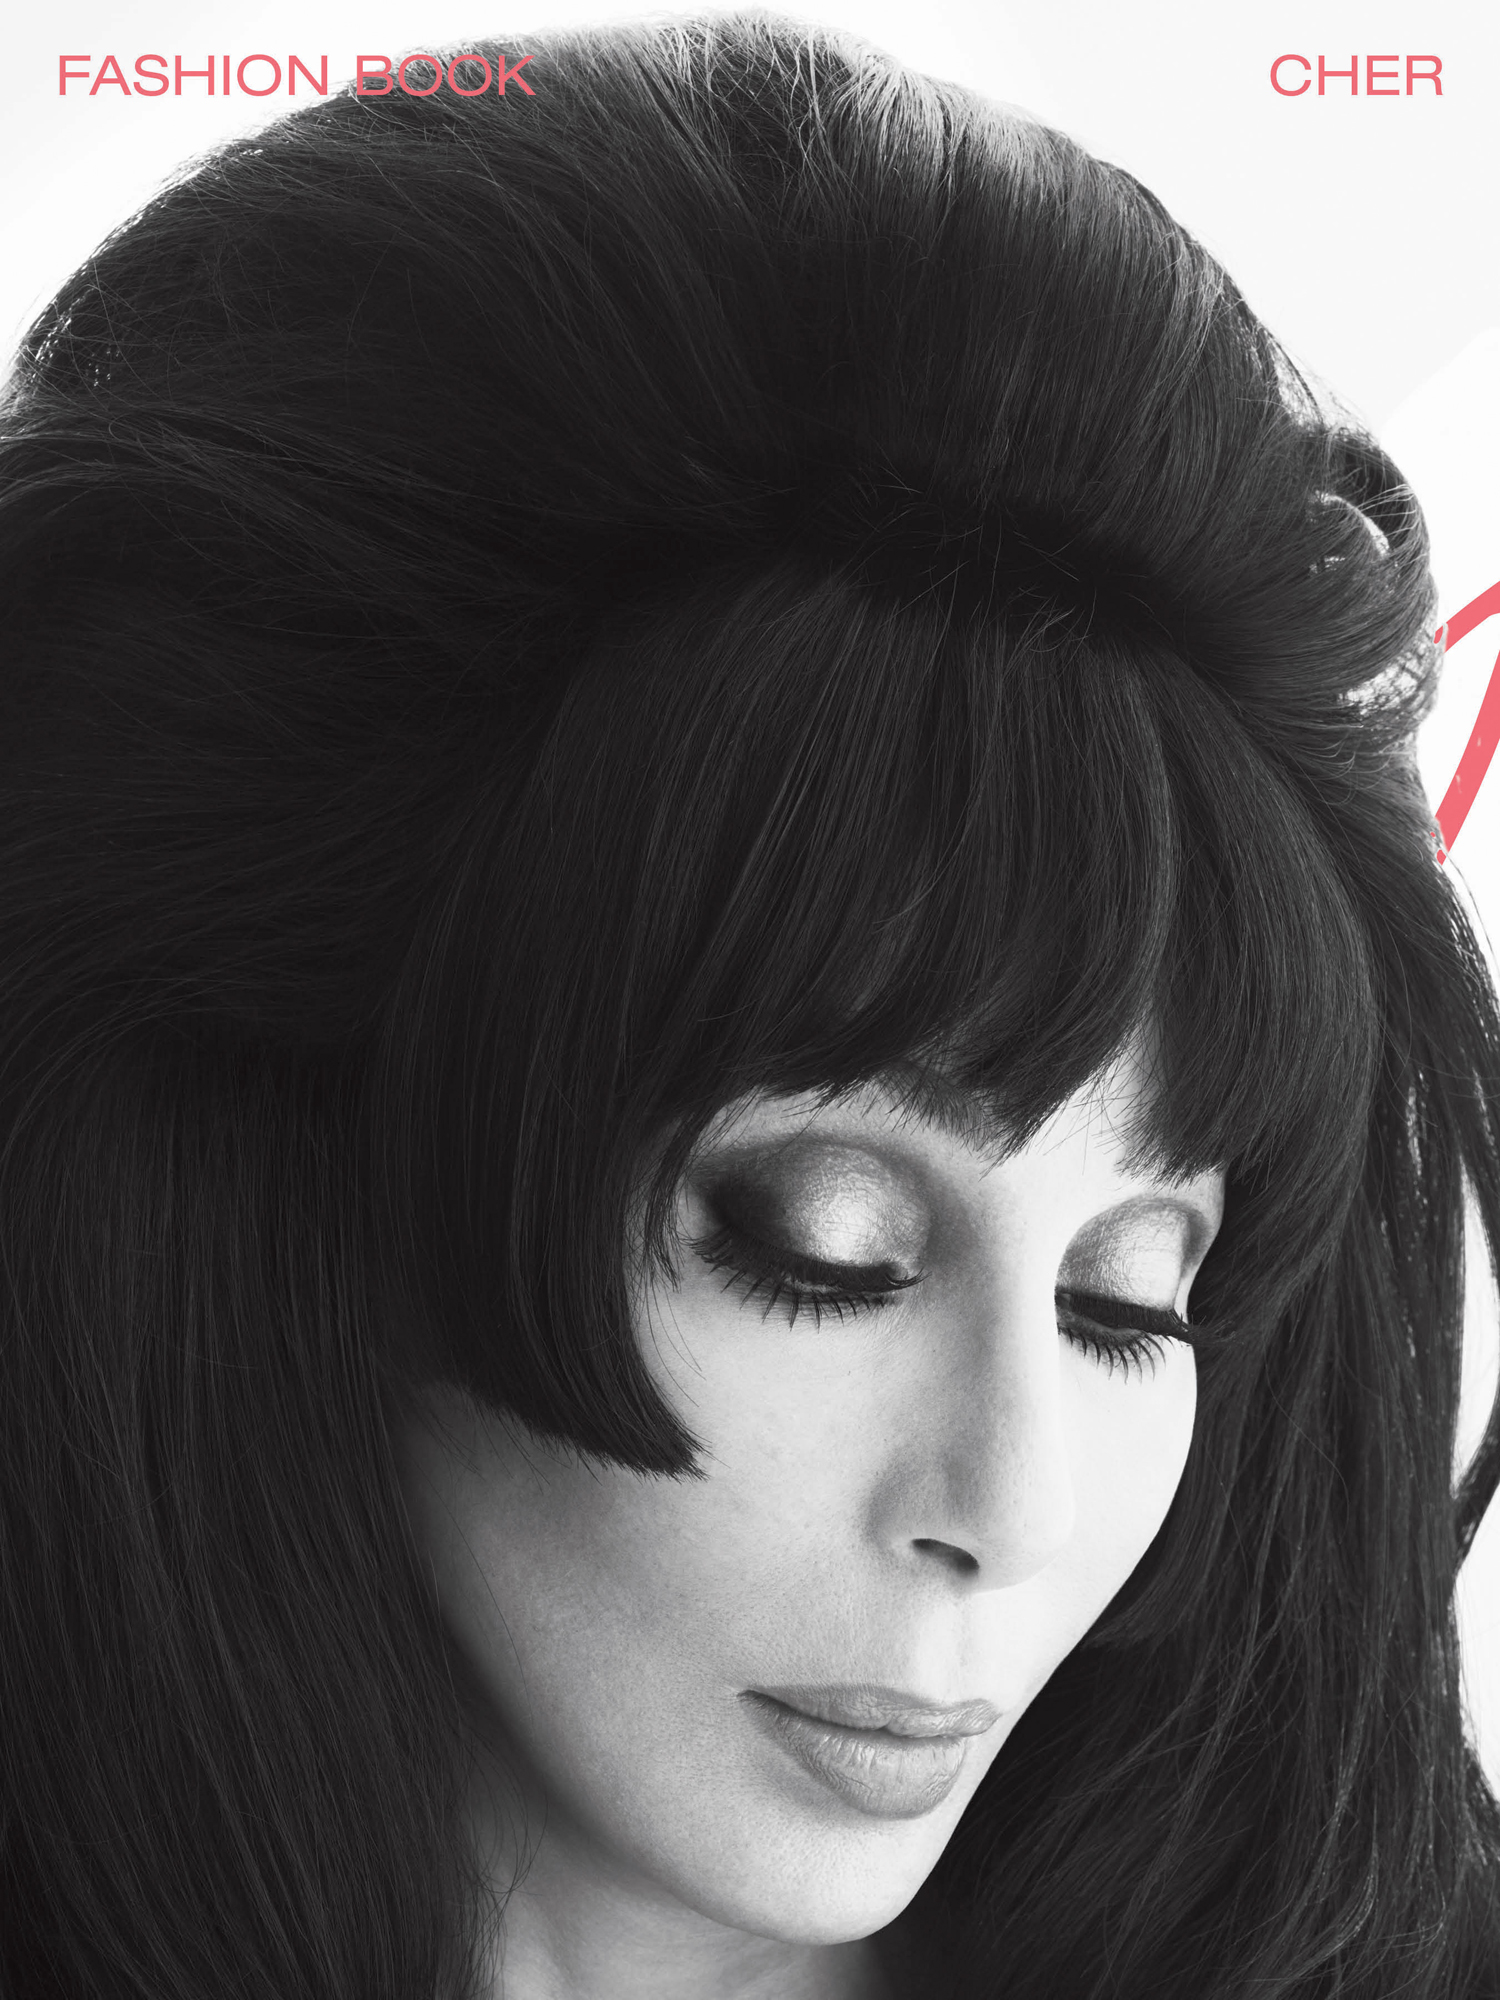 Cher shot by Mert and Marcus for CR Fashion Book Issue 16